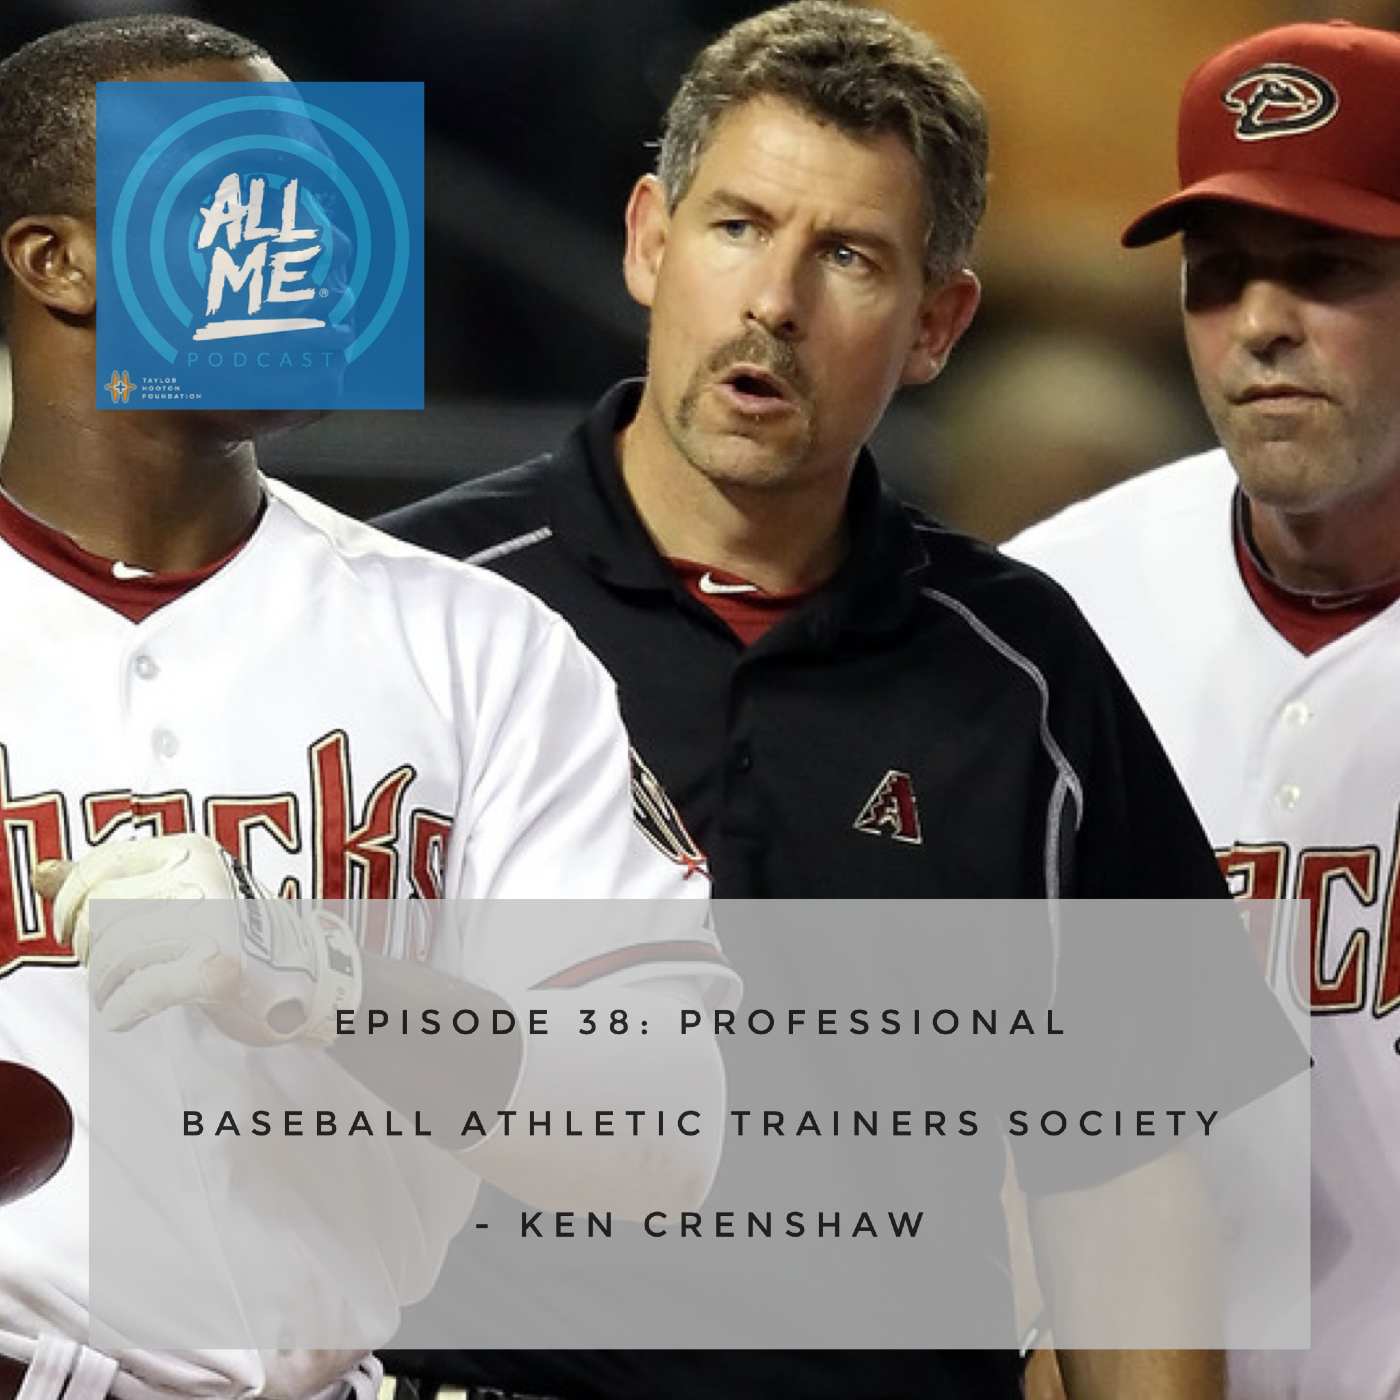 Episode 38: Professional Baseball Athletic Trainers Society - Ken Crenshaw